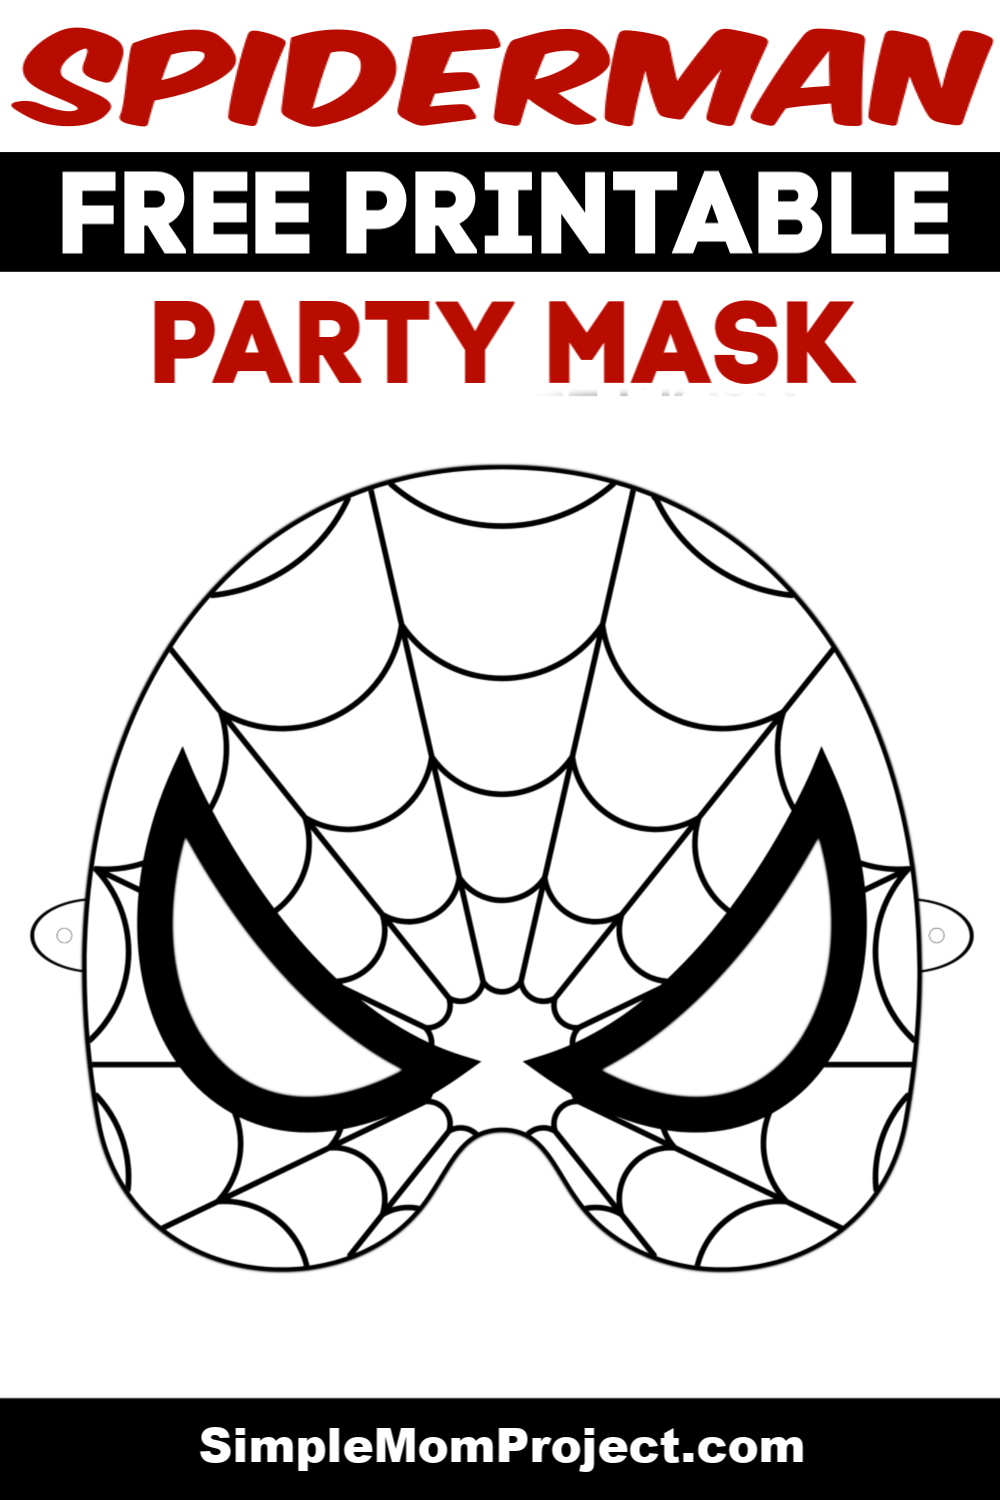 It's just a picture of Sweet Spiderman Mask Printable